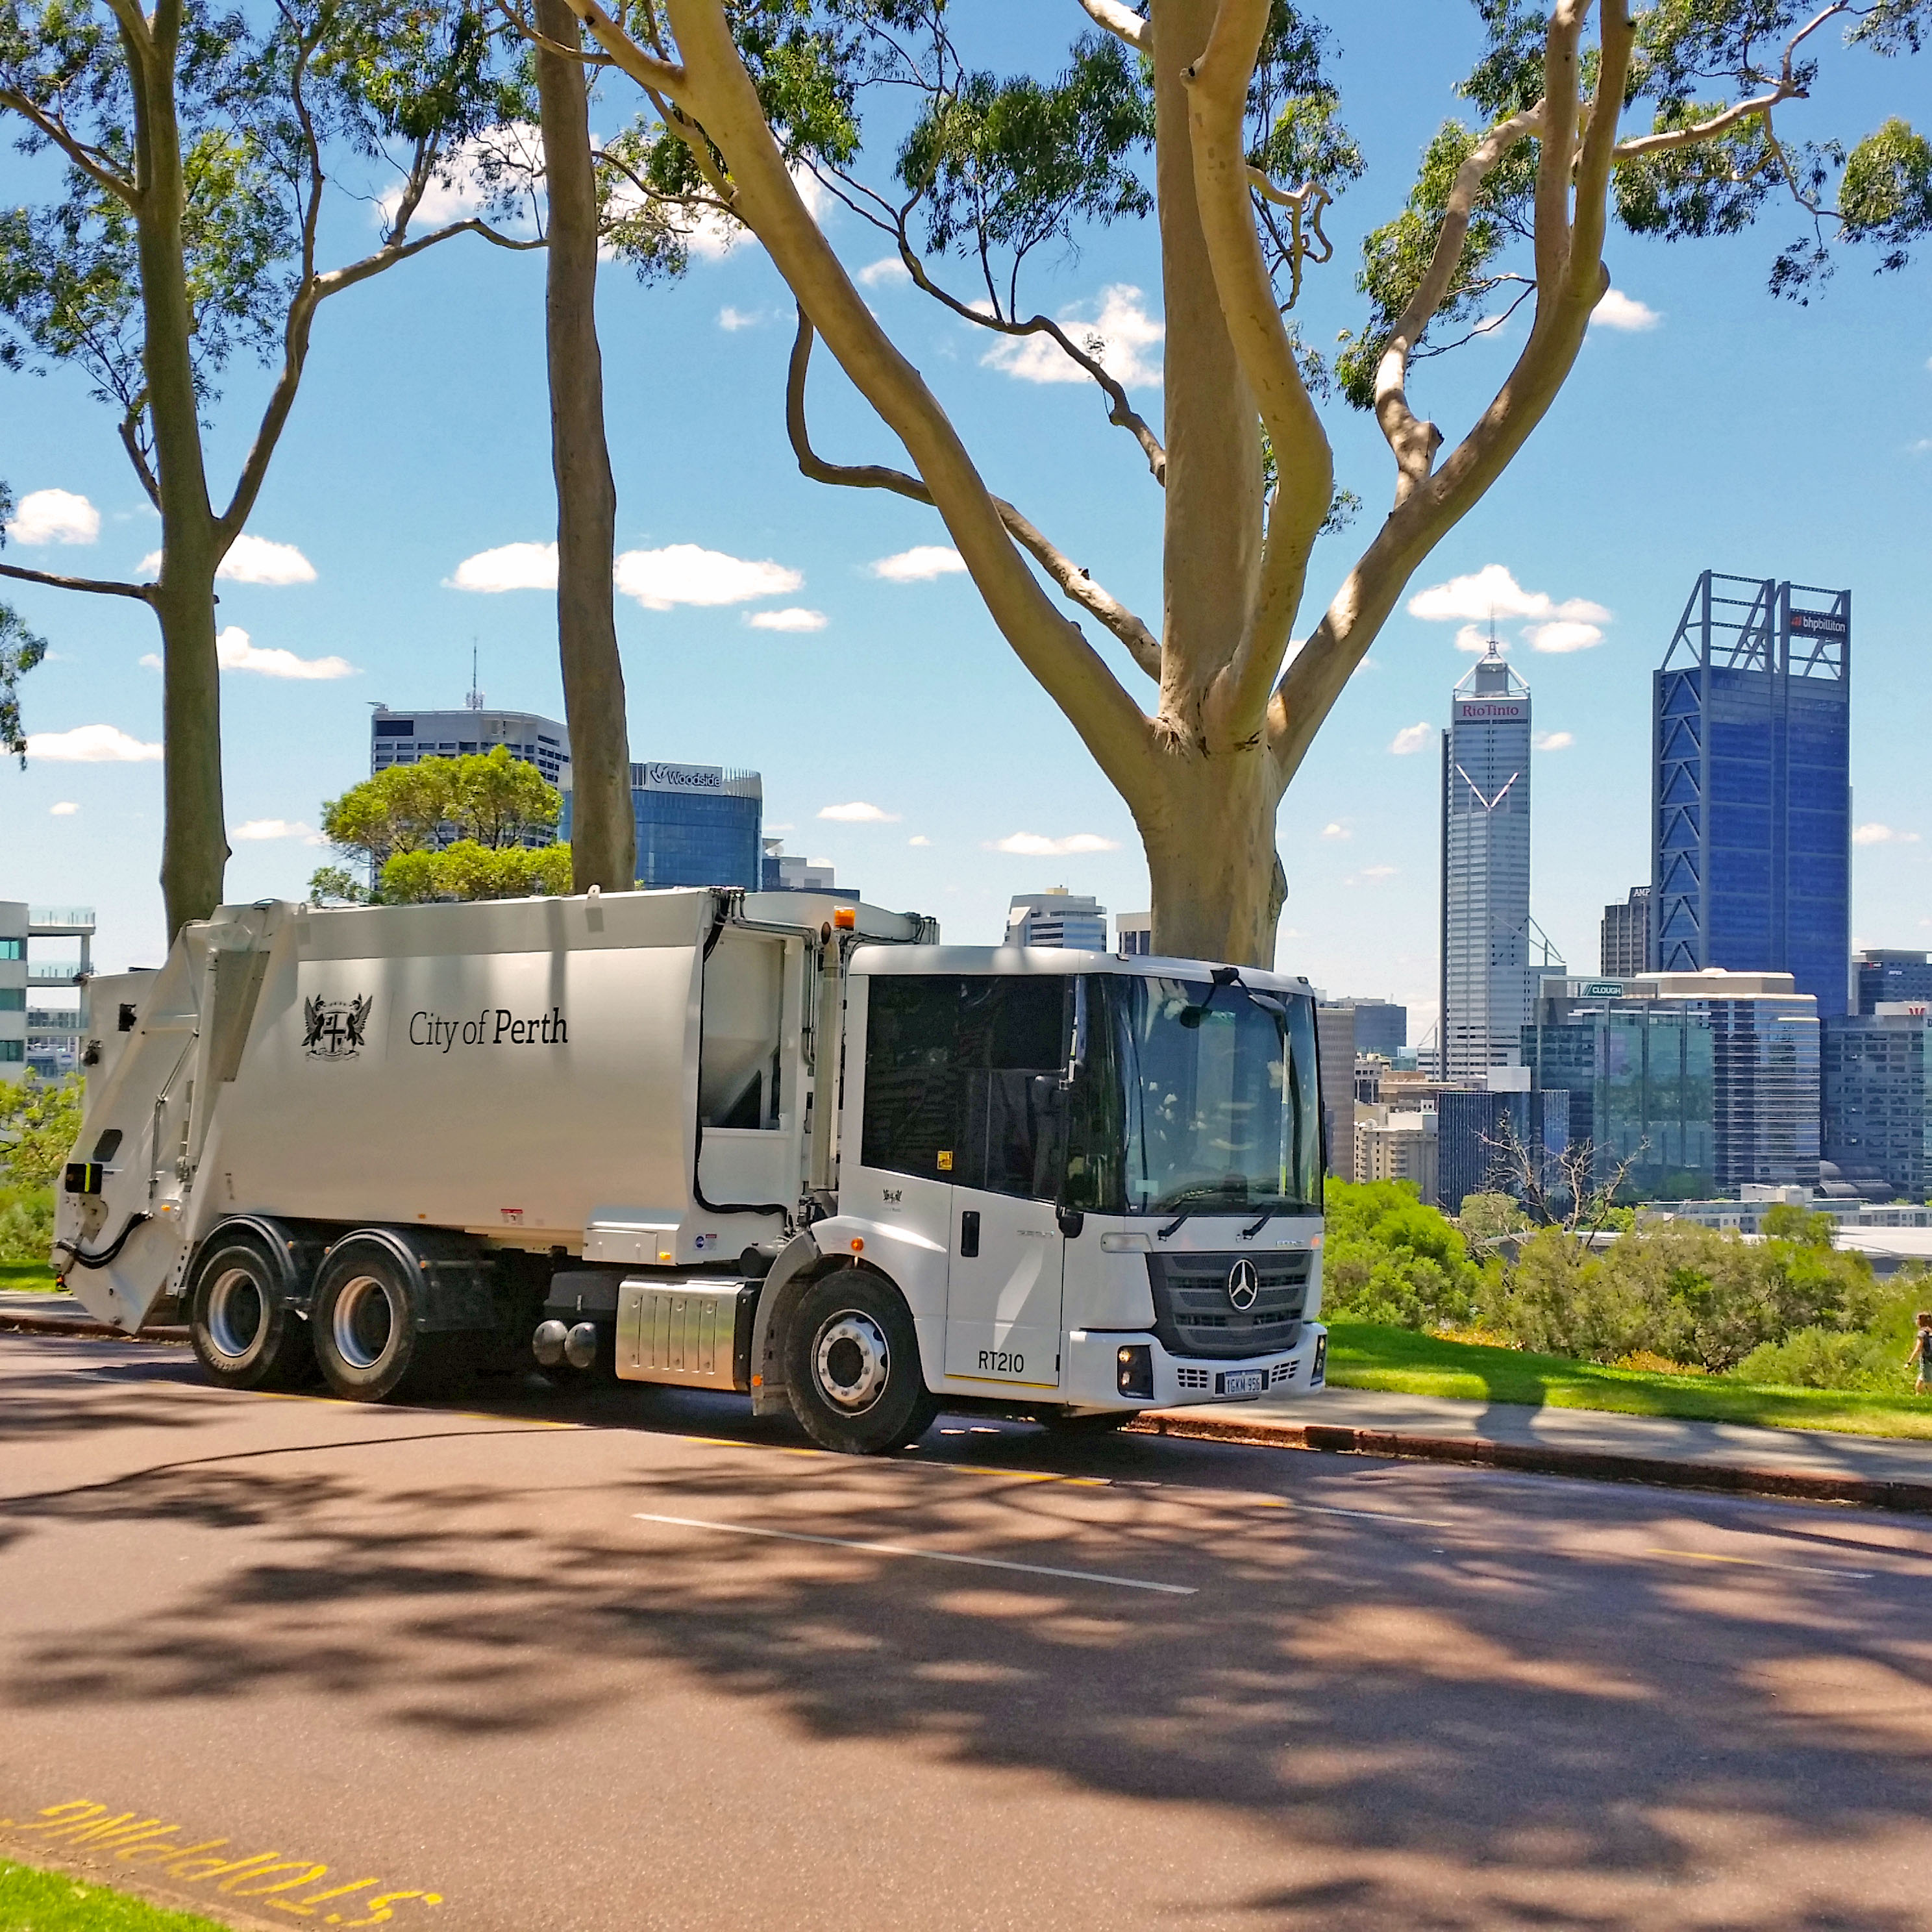 City of Perth recycled waste truck